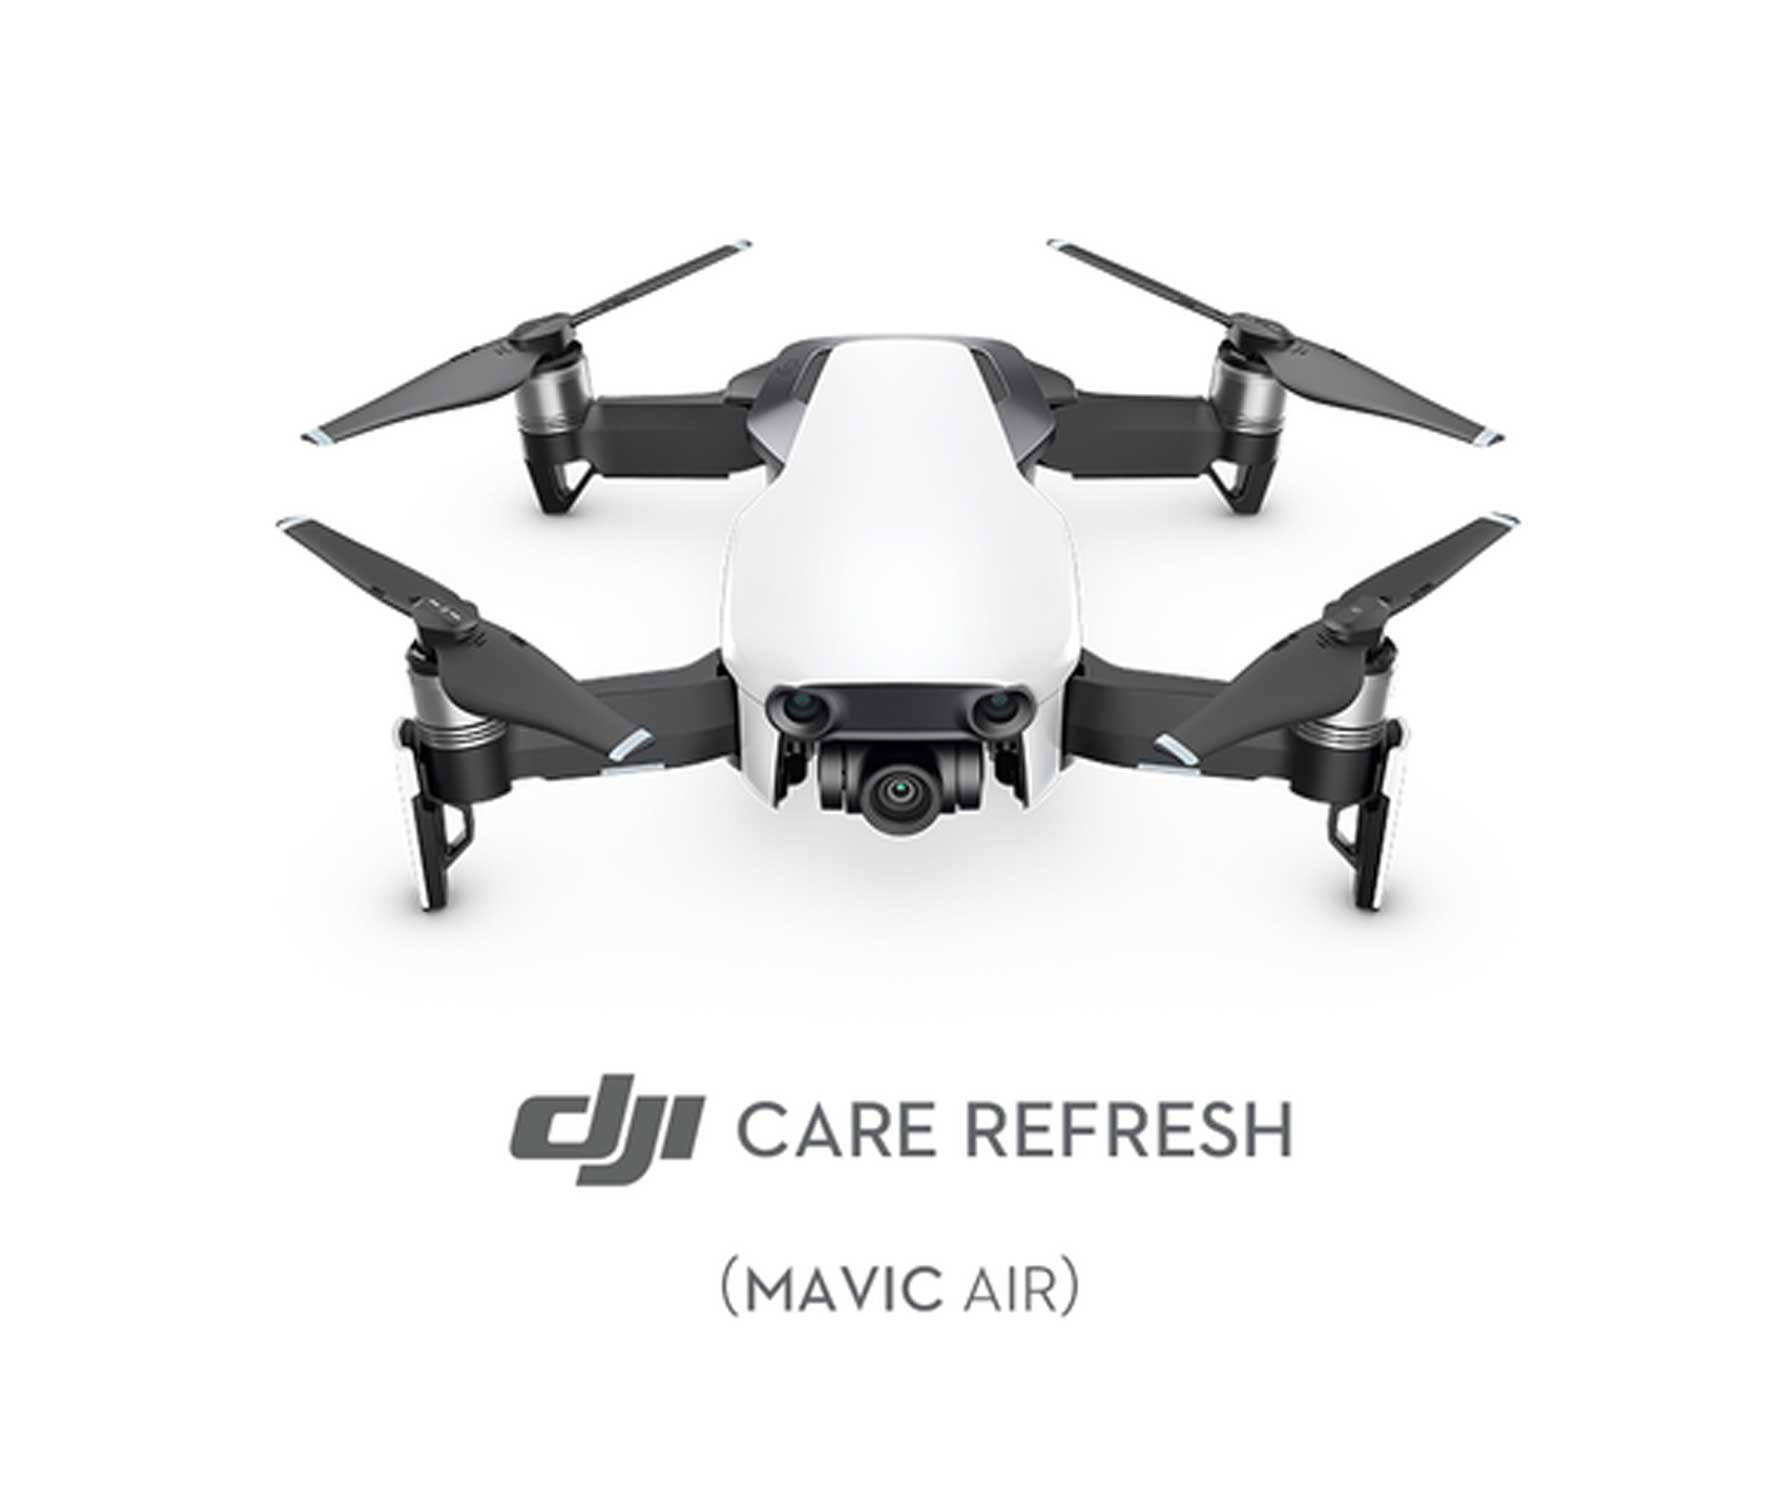 DJI Care Refresh (Mavic Air) - Innovative UAS | Drones